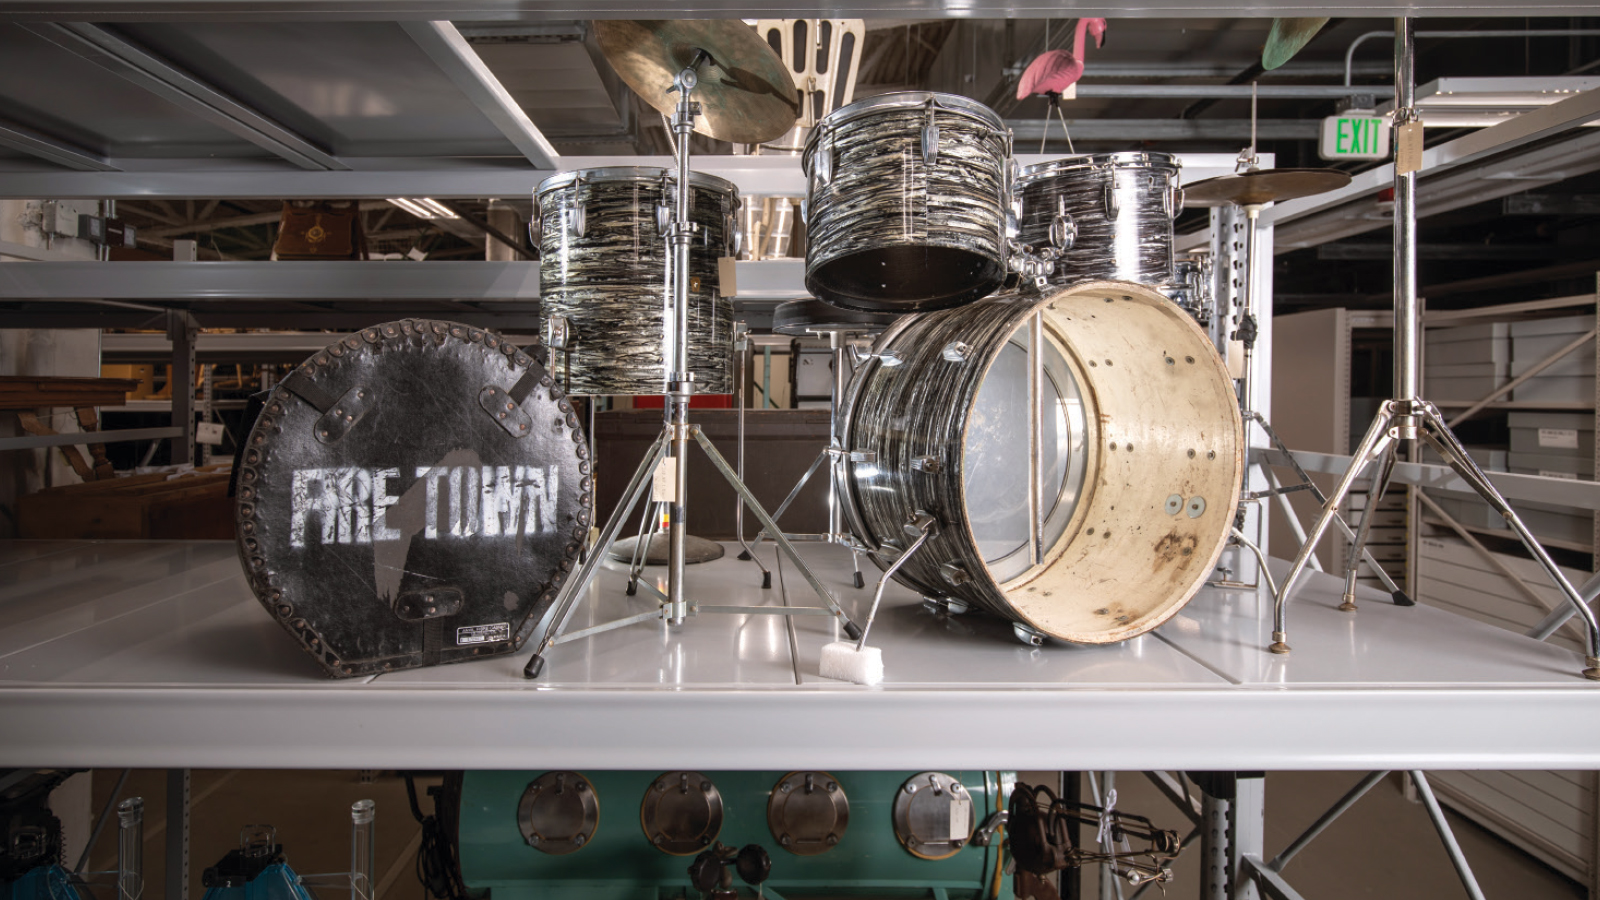 butch vig's drum set on a shelf